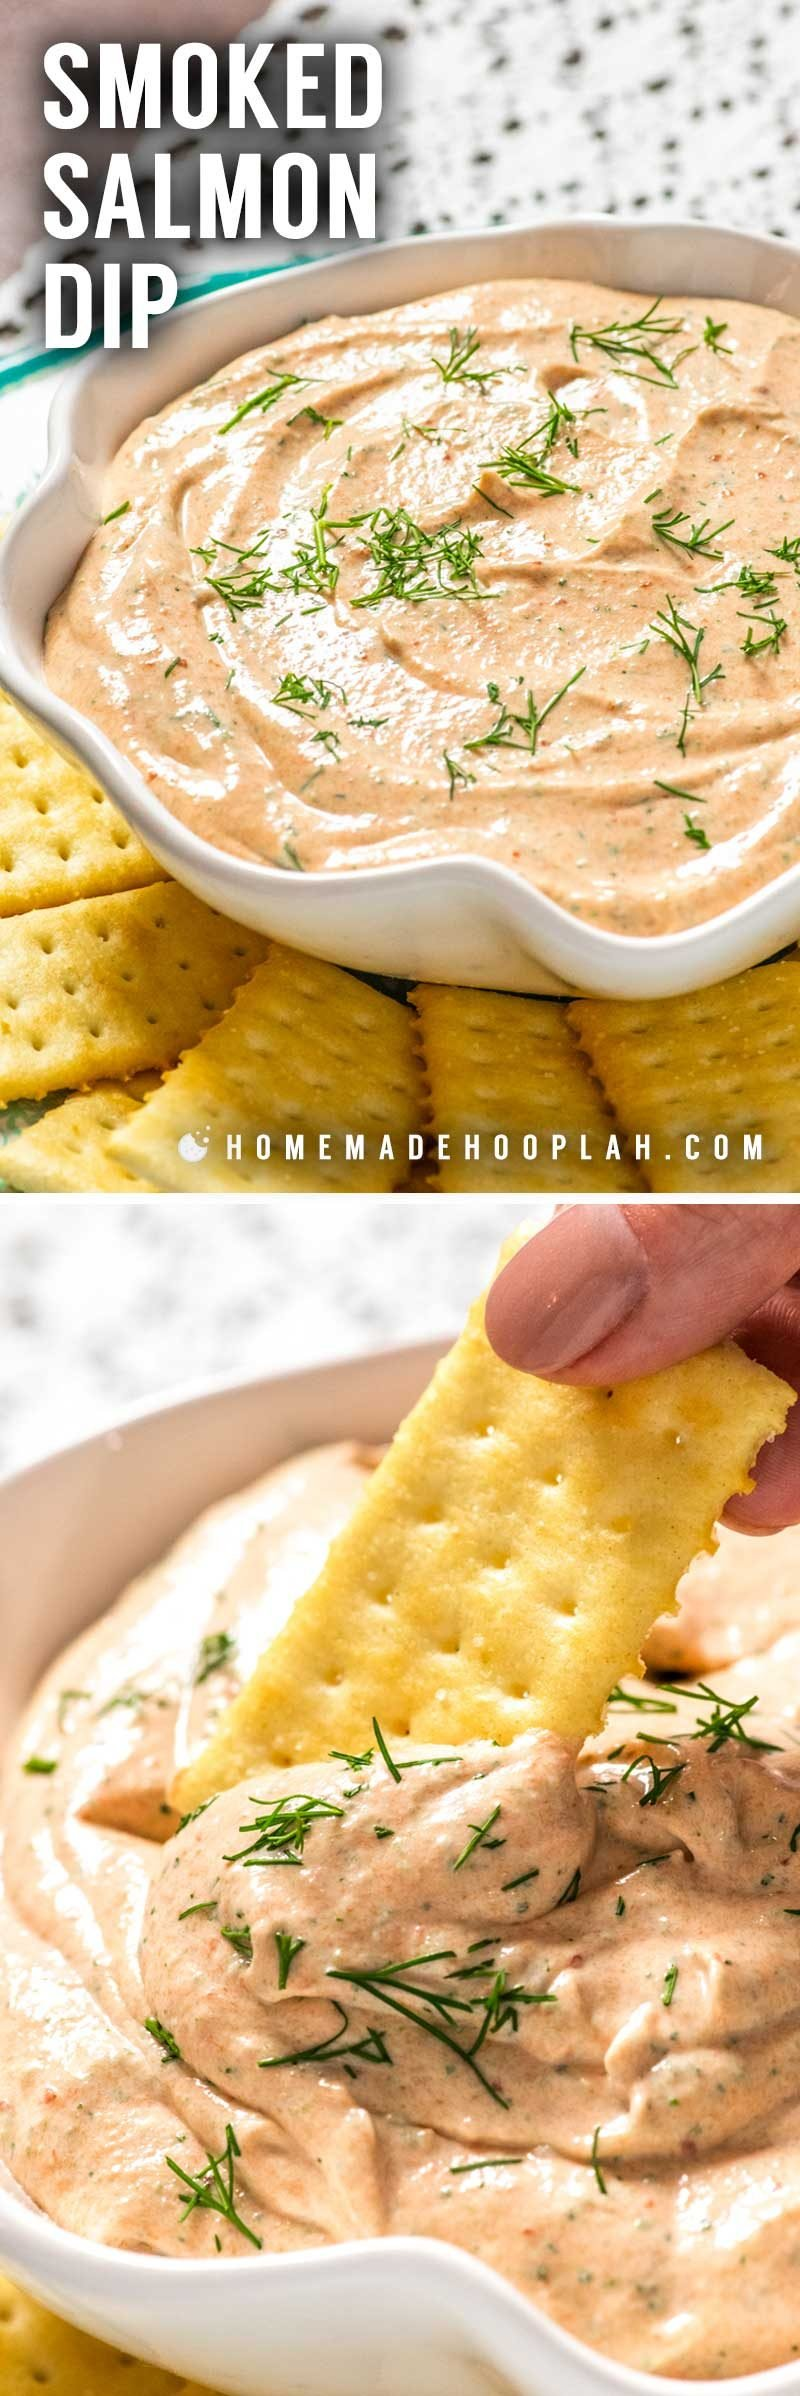 Easy smoked salmon dip with lemon, dill, and capers.